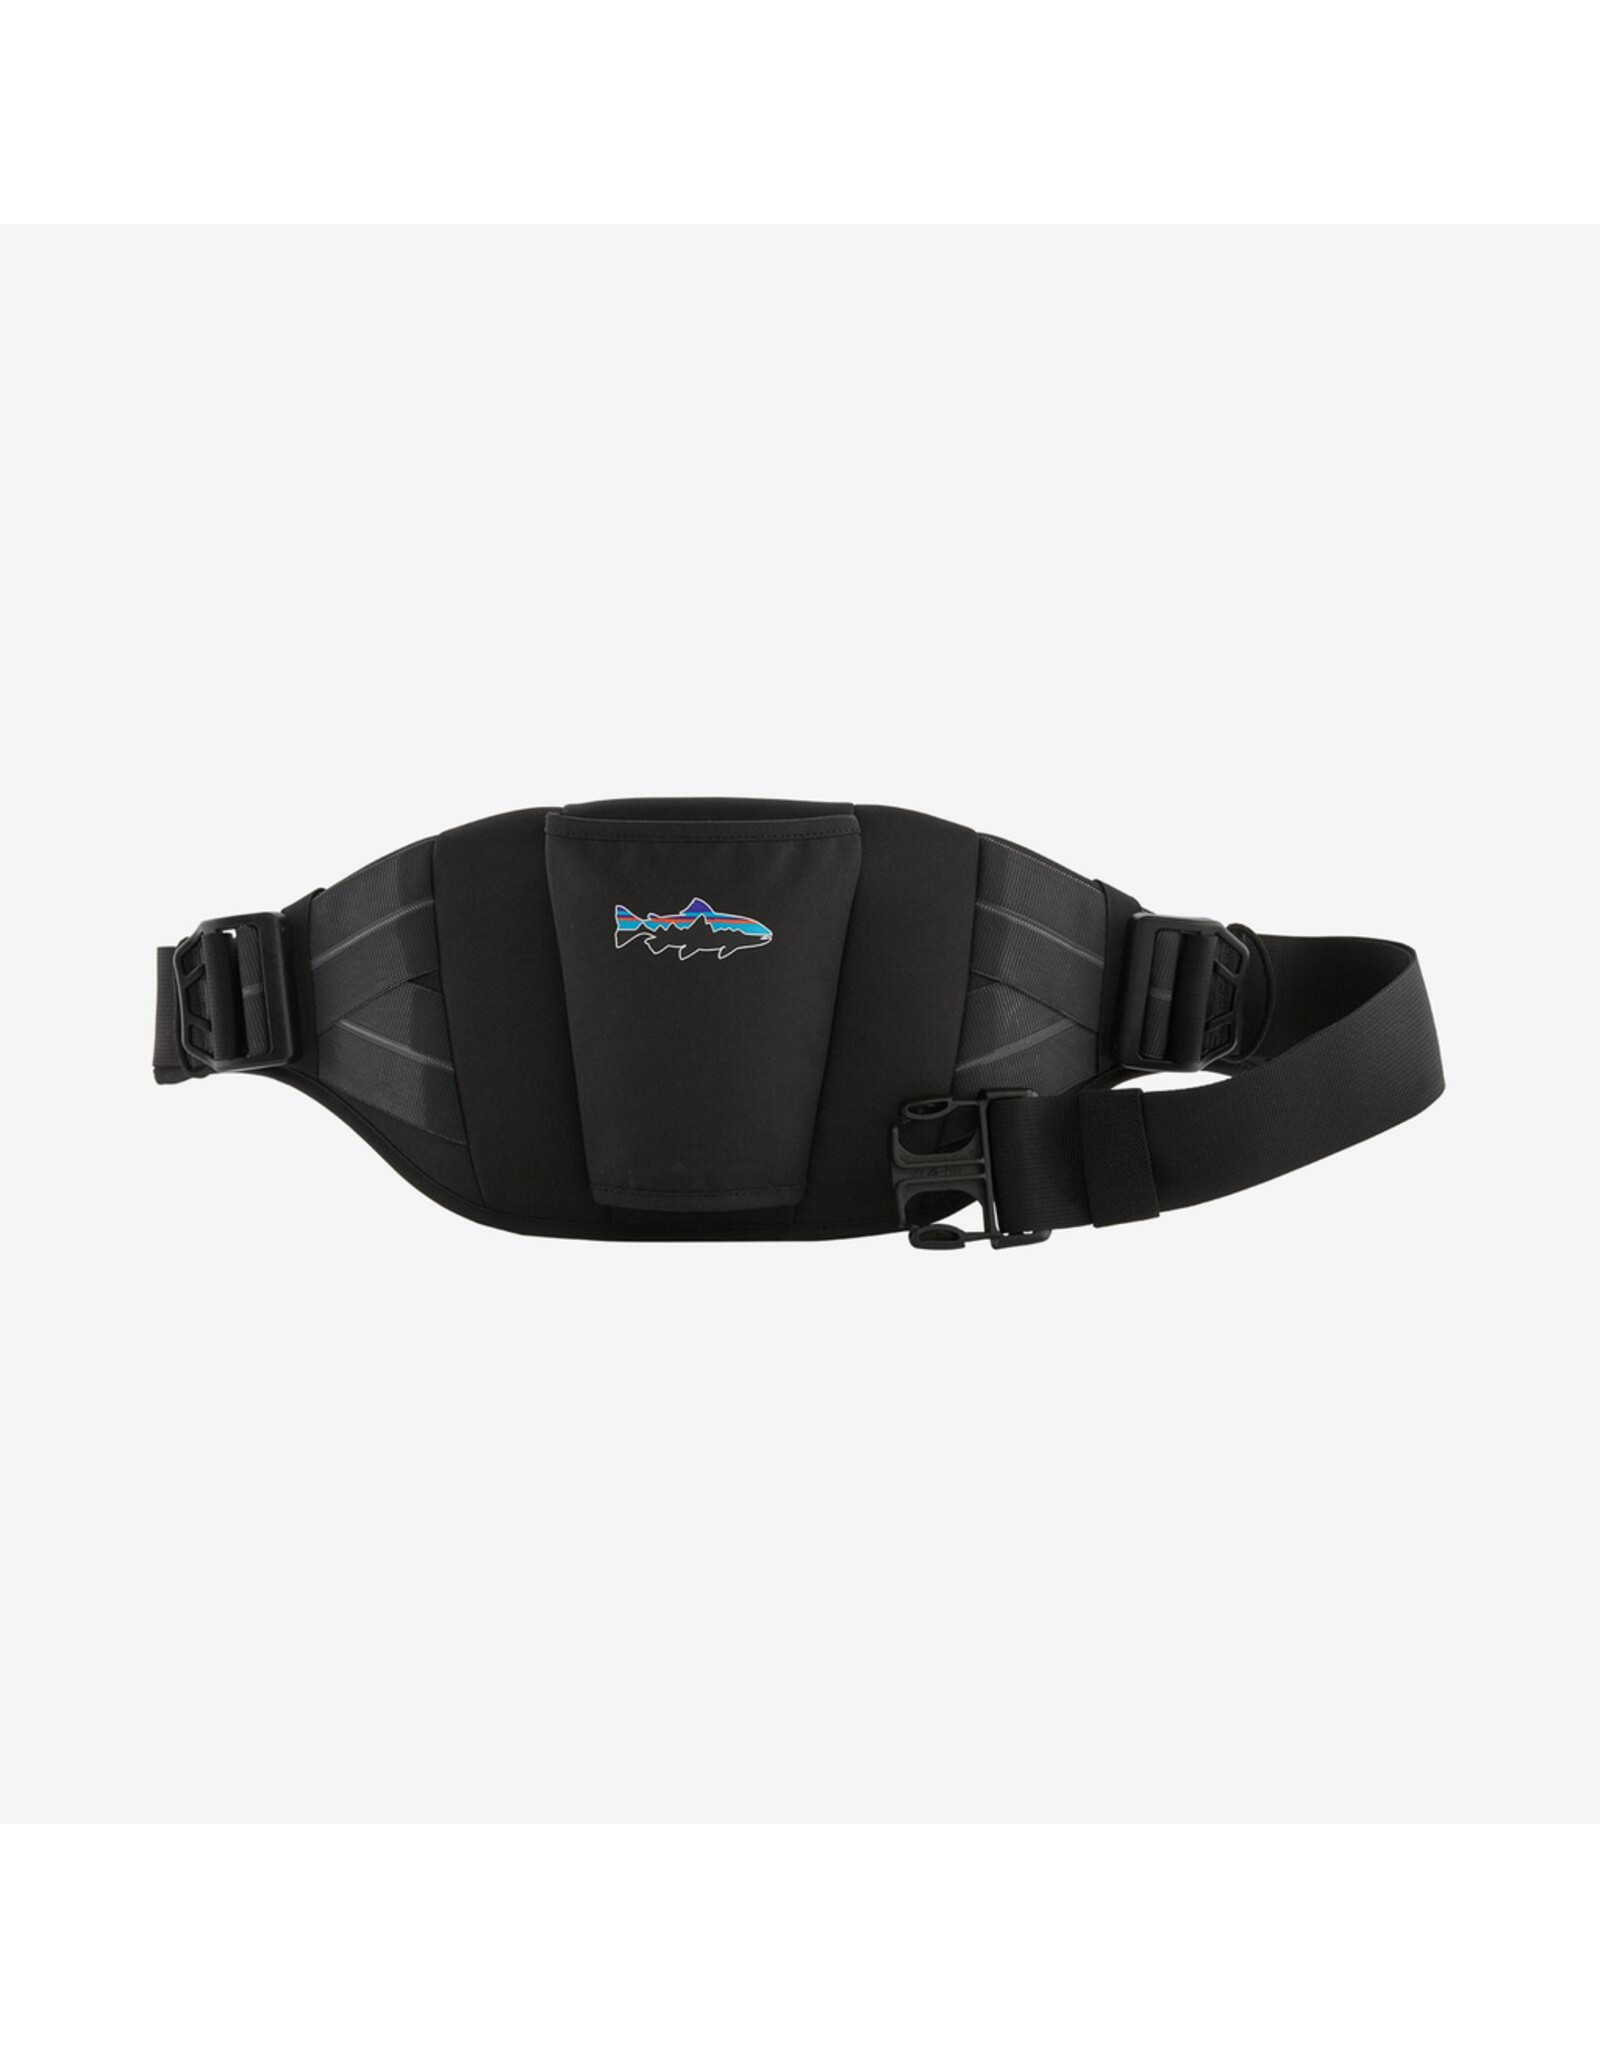 Our Wading Support Belt provides a sturdy, molded back assist for comfortable all-day wading. Available in two sizes, the fully adjustable belt covers a wide range of waist measurements, integrates into Patagonia waders and features a generous net sleeve